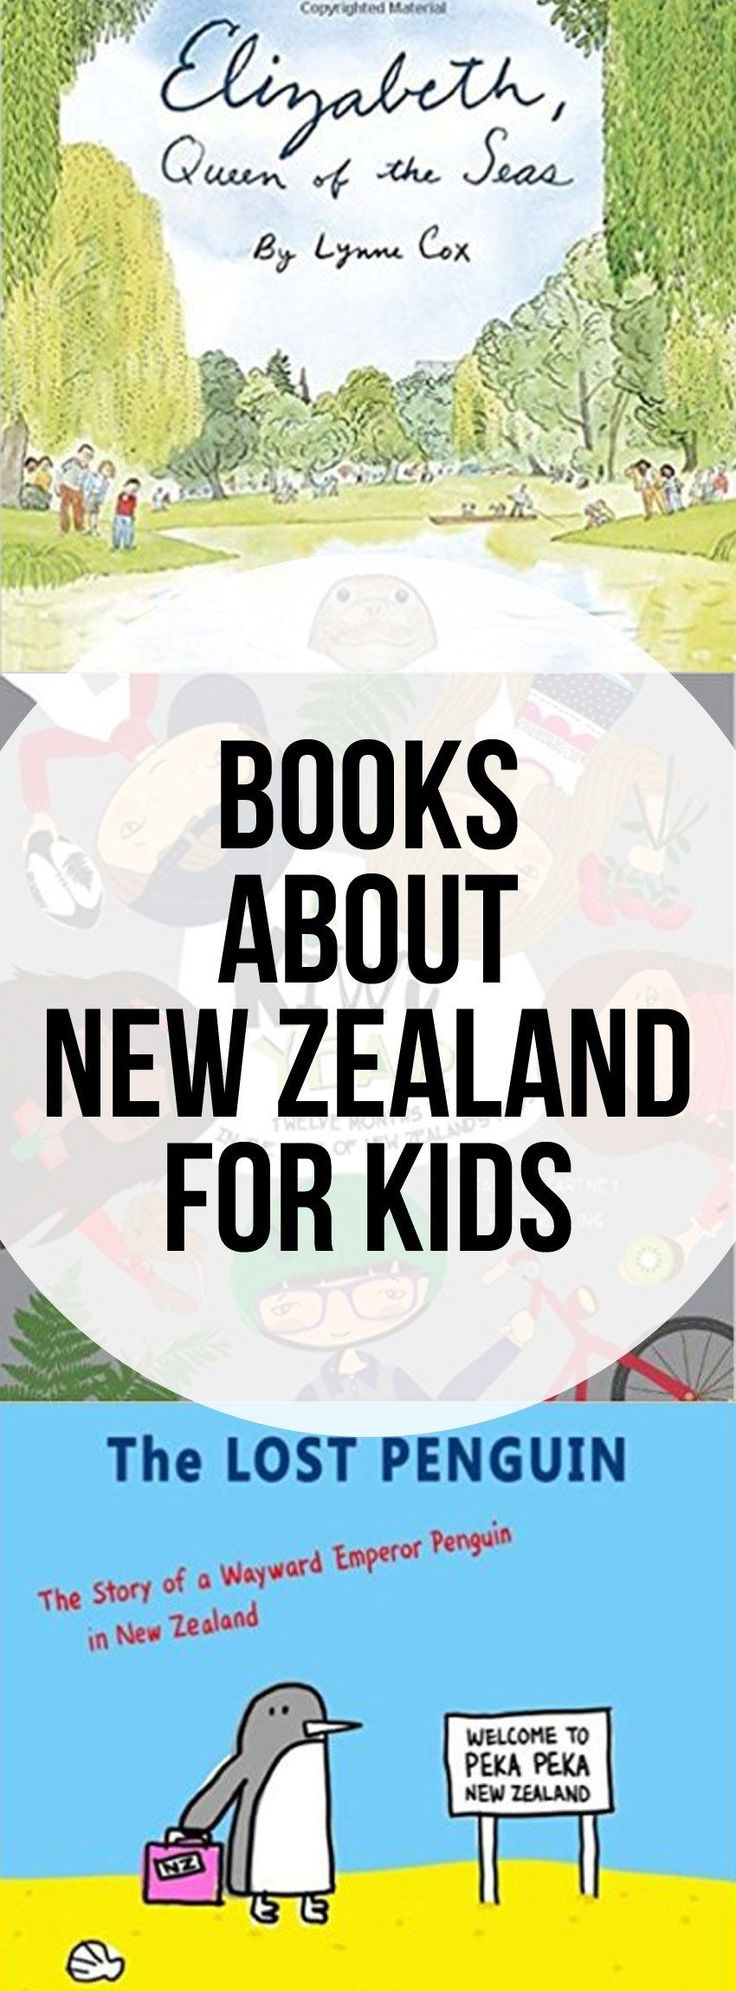 Books About New Zealand for Kids - picture books and non-fiction books.